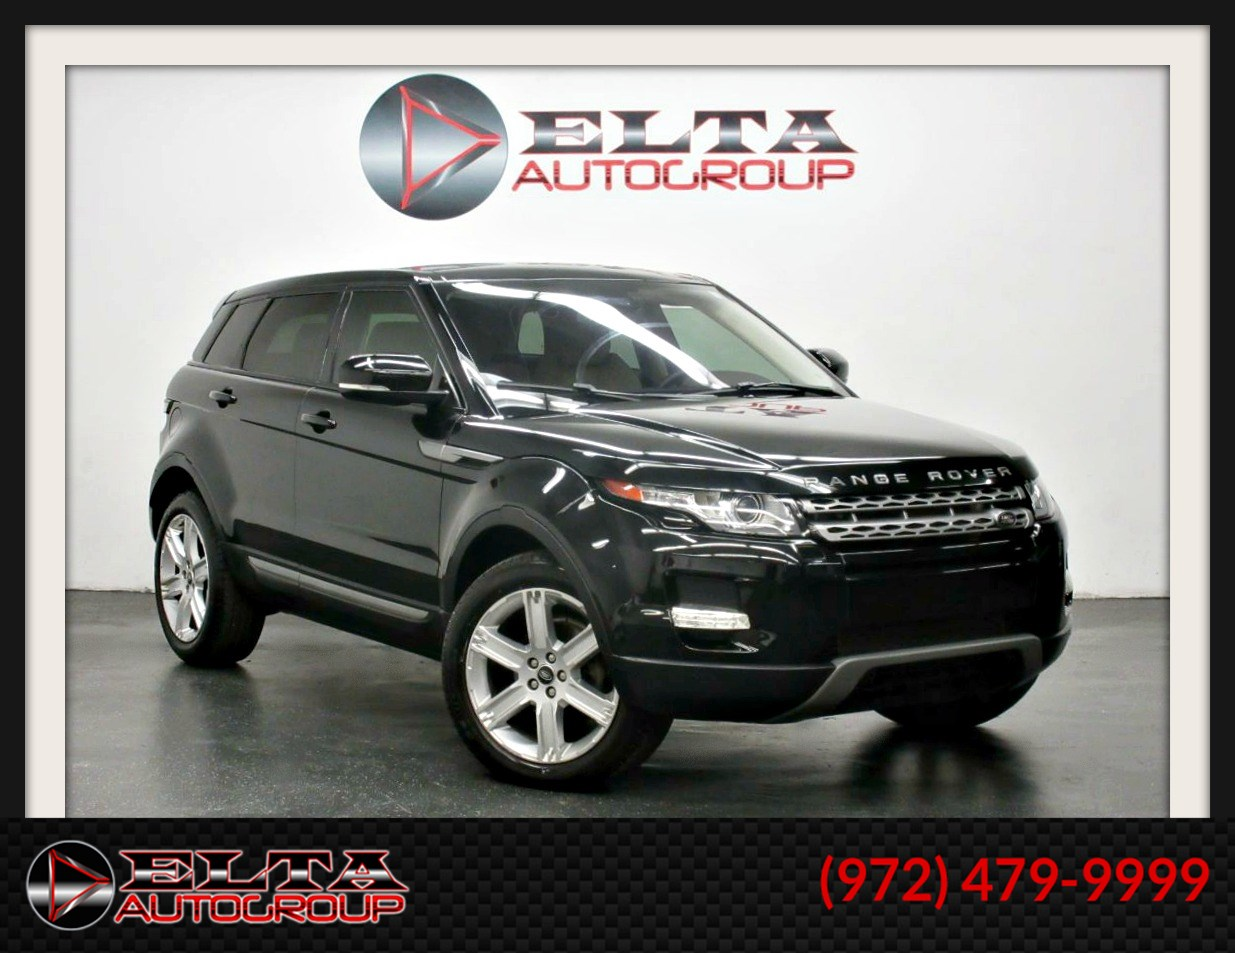 2013 Land Rover Range Rover Evoque Pure Plus * NAVI * CAMERA * PANORAMIC * LOW MILES